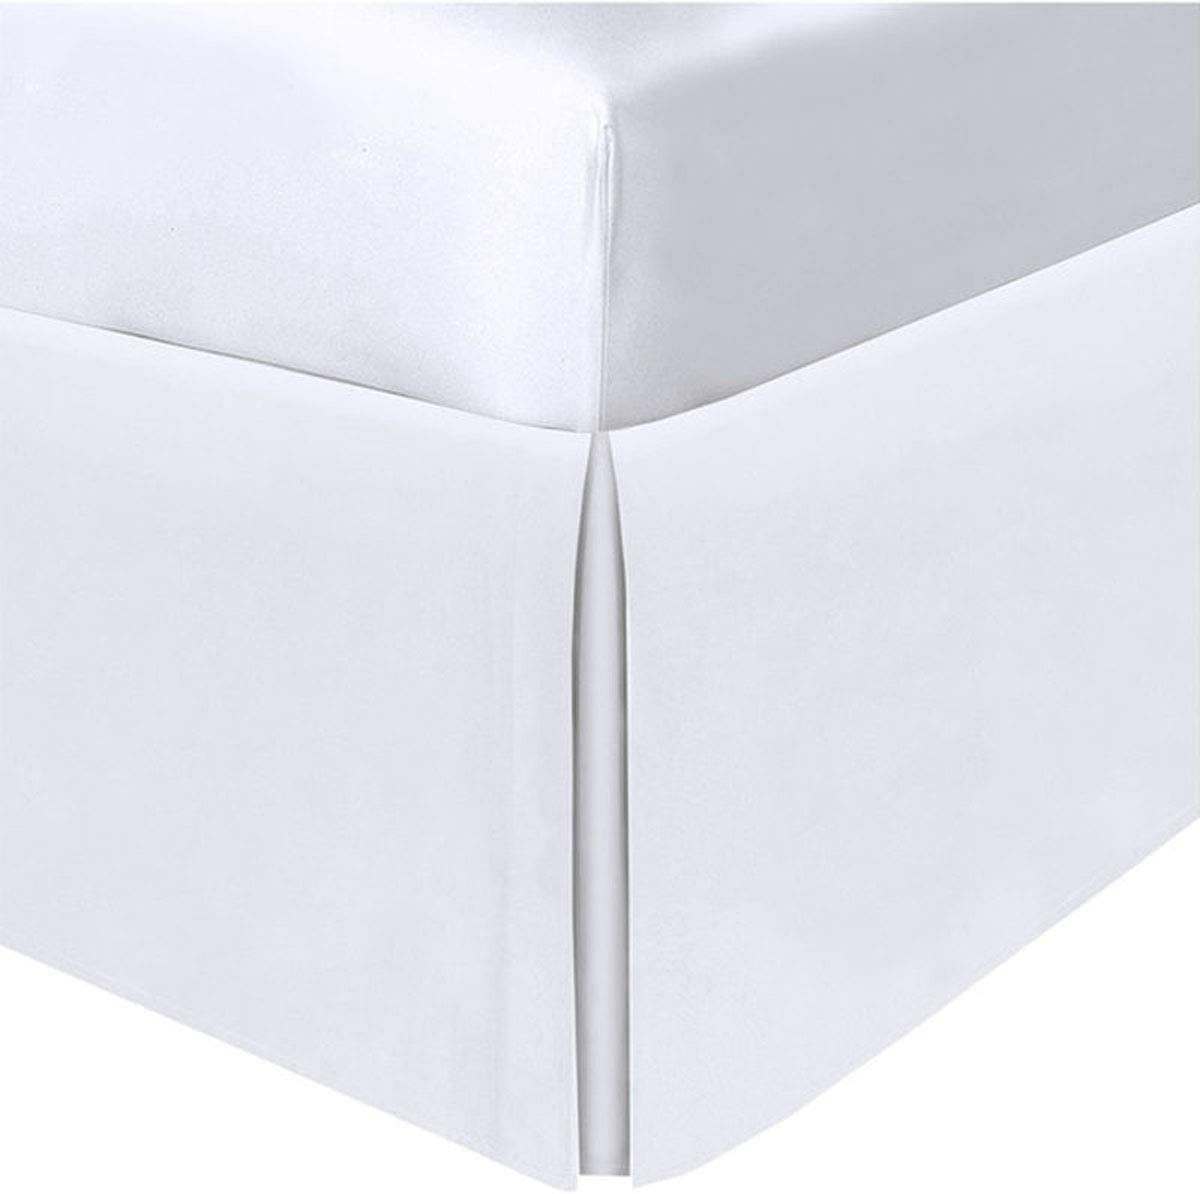 """Pacific Linens Bed Skirt - Solid White 200 Thread Count Durable Soft Poly-Cotton Blend True 15"""" Drop, Light Weight, Perfect Finish, Home Decor (Twin Size)"""